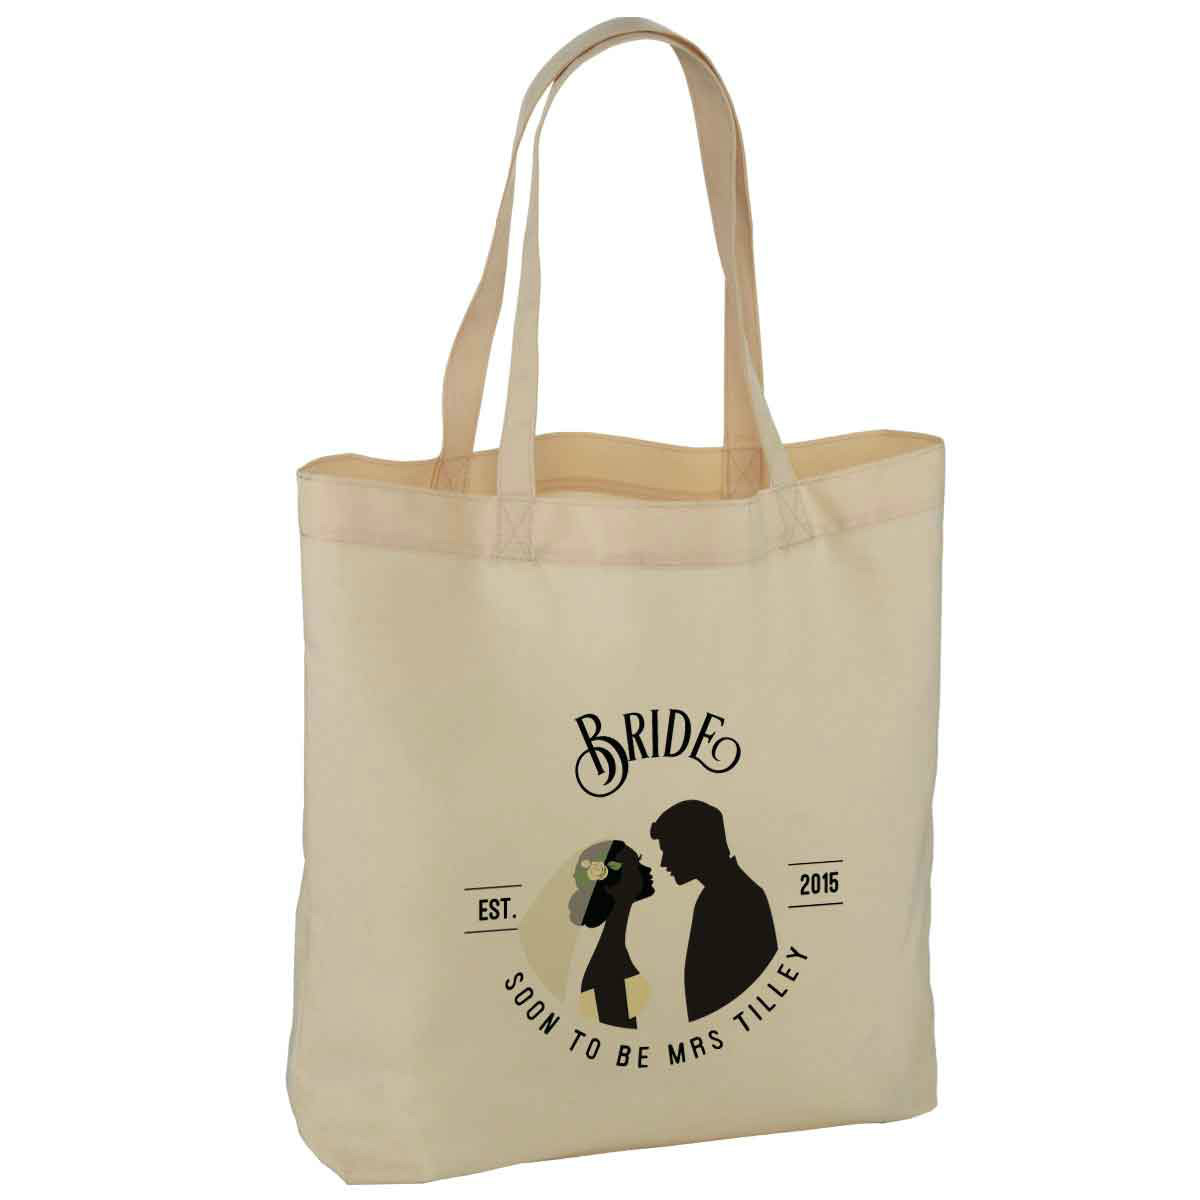 personalised brides wedding party cotton tote bag available in two sizes with handles. Black Bedroom Furniture Sets. Home Design Ideas